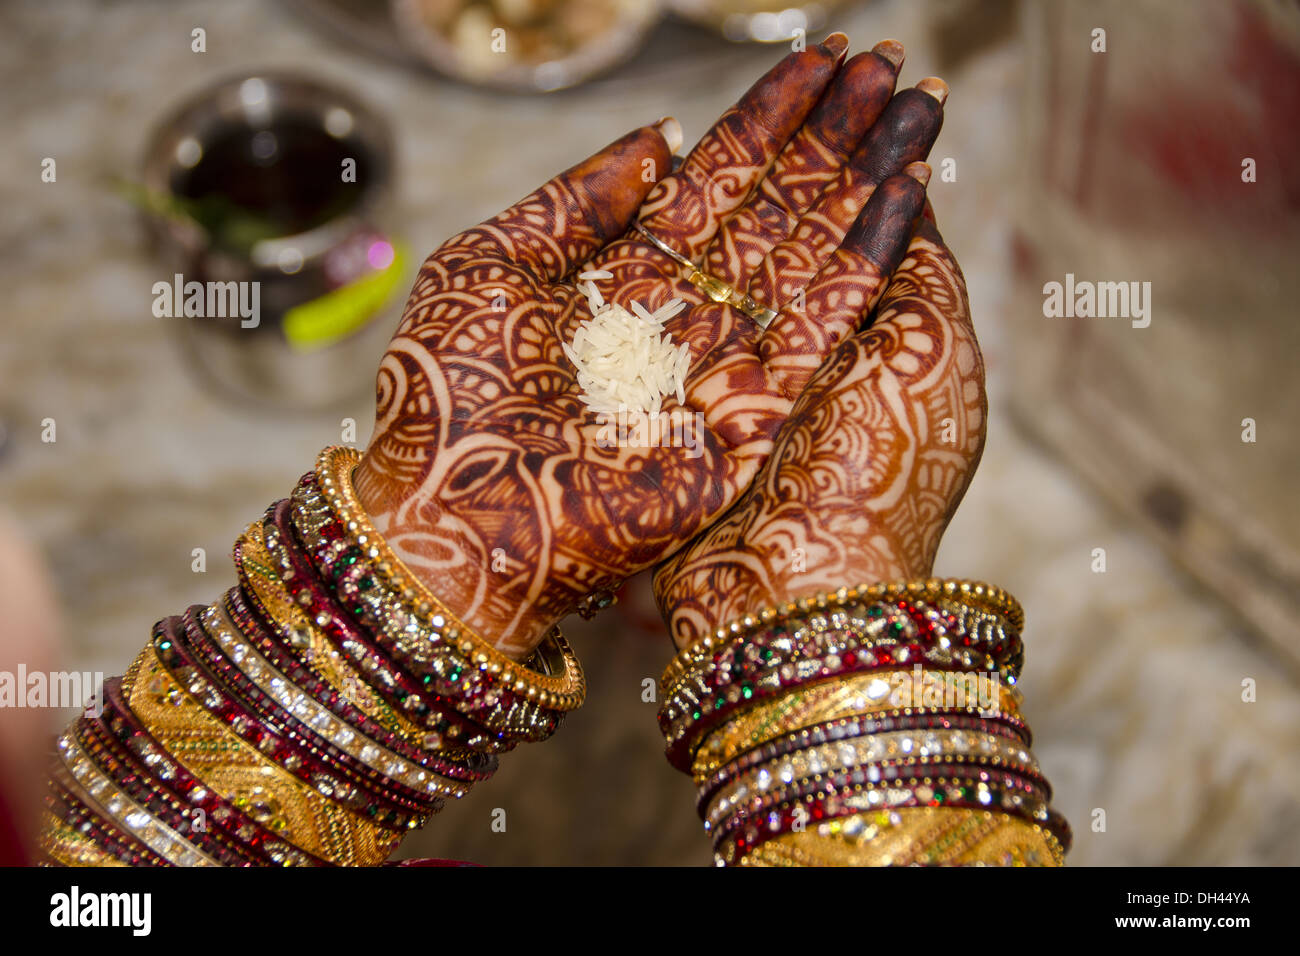 Bangle Hands Wedding Stock Photos & Bangle Hands Wedding Stock ...